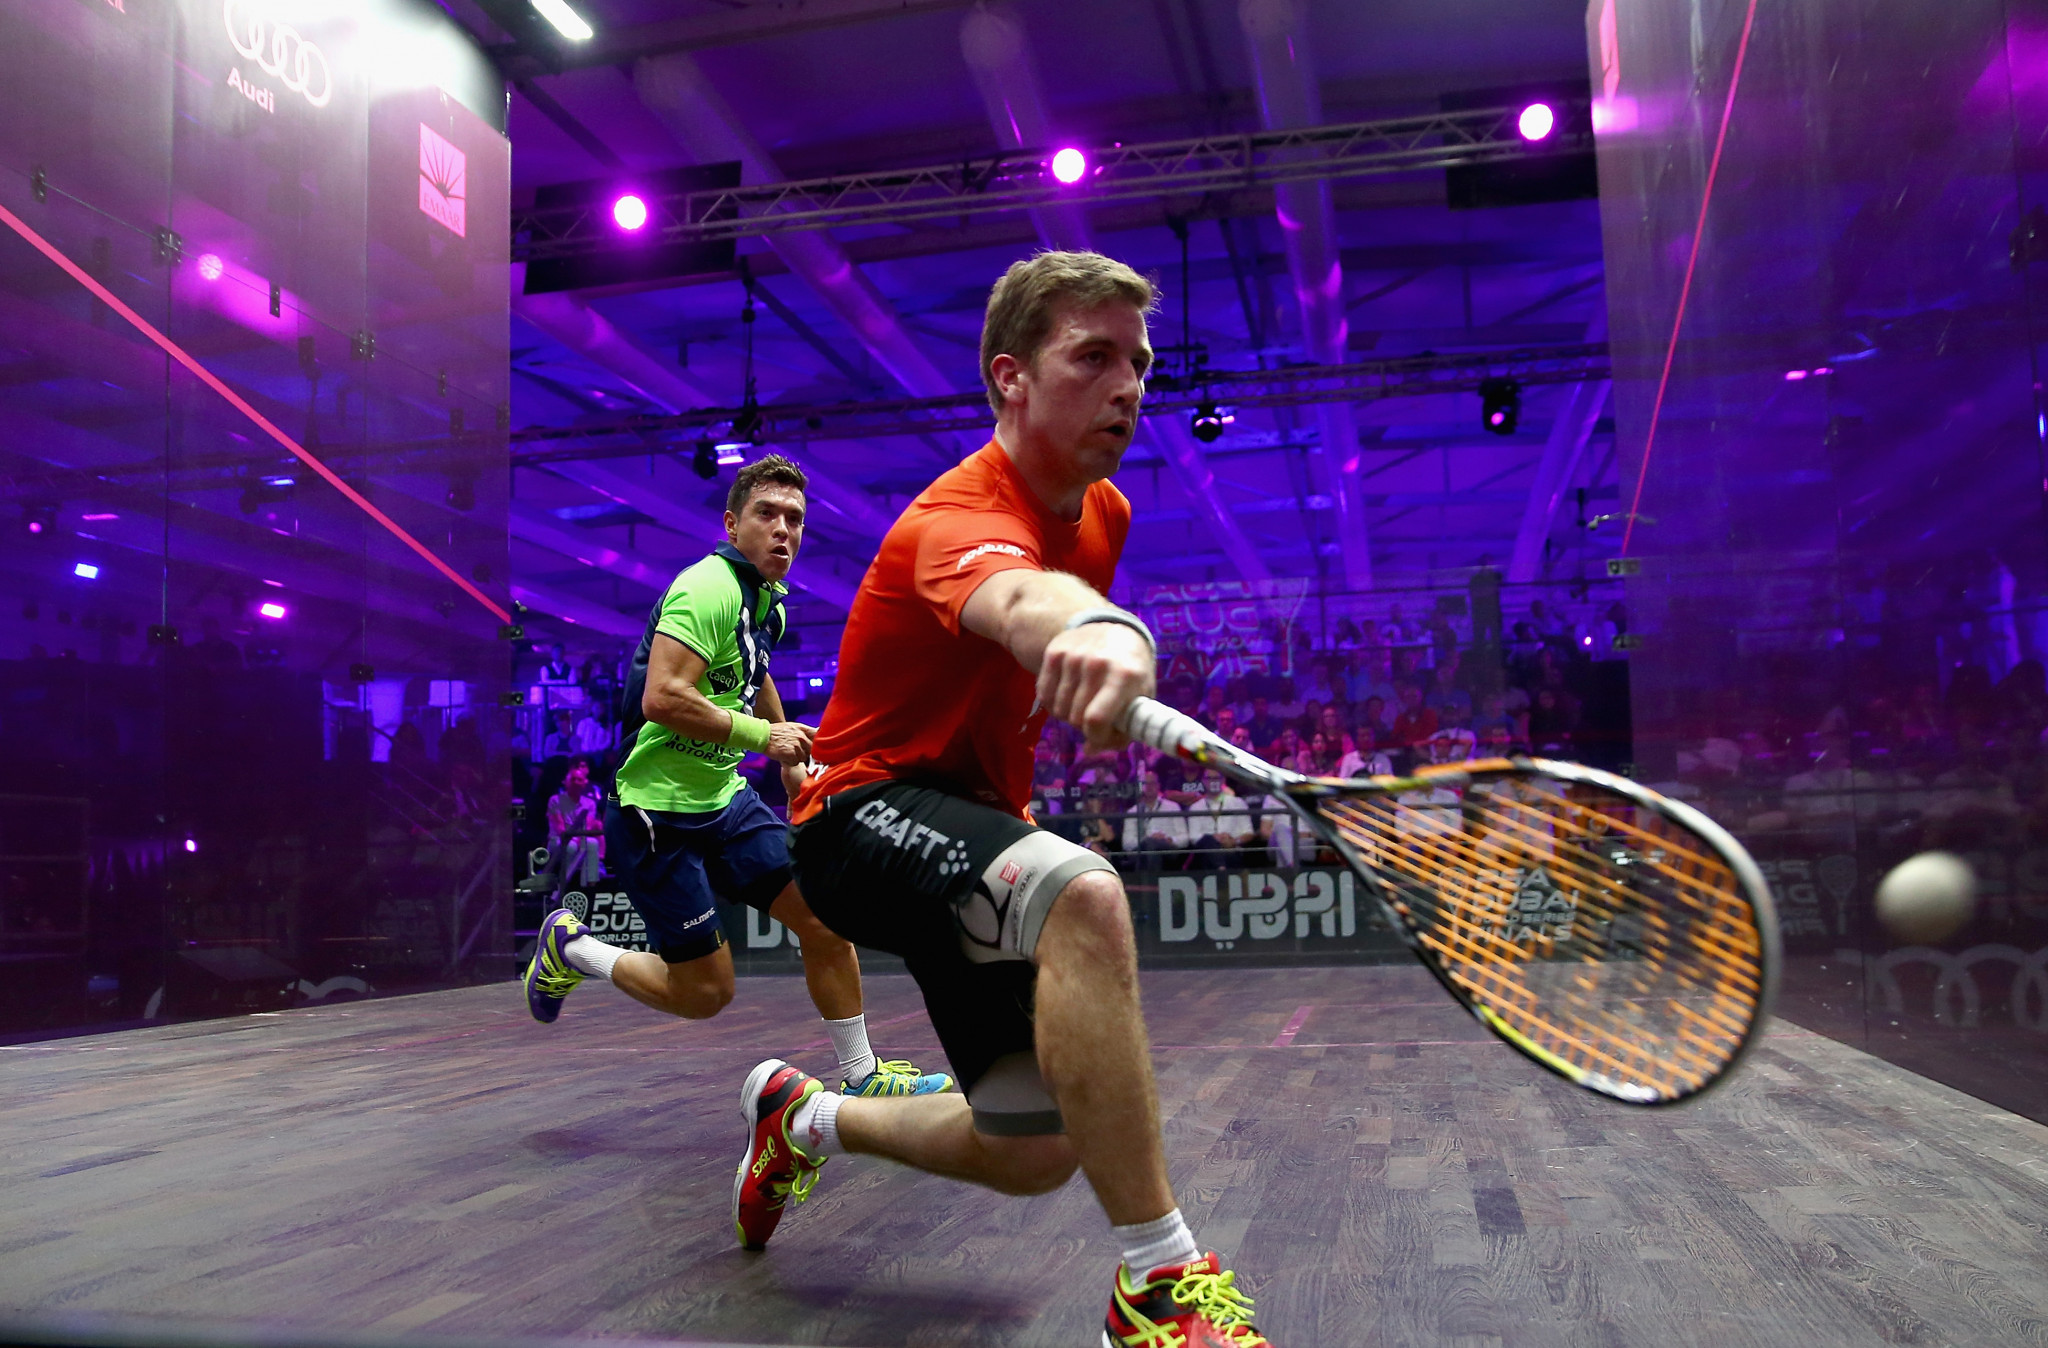 Mathieu Castagnet eased past England's Sam Todd and will now play second seed Simon Rösner from Germany ©Getty Images